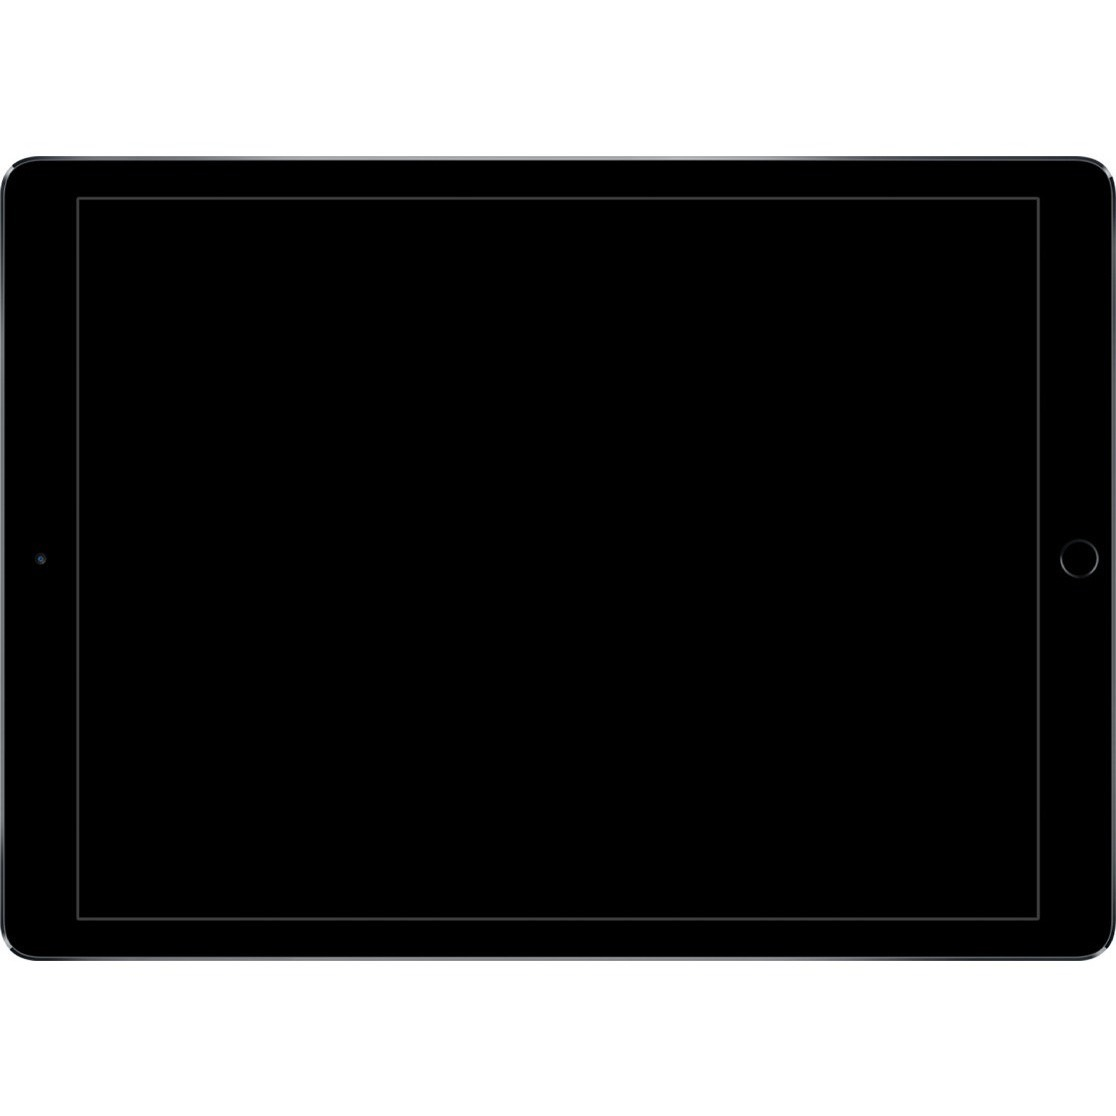 Apple iPad Pro Tablet - 32.8 cm 12.9inch - Apple A9X - 32 GB - iOS 9 - Retina Display - Space Gray